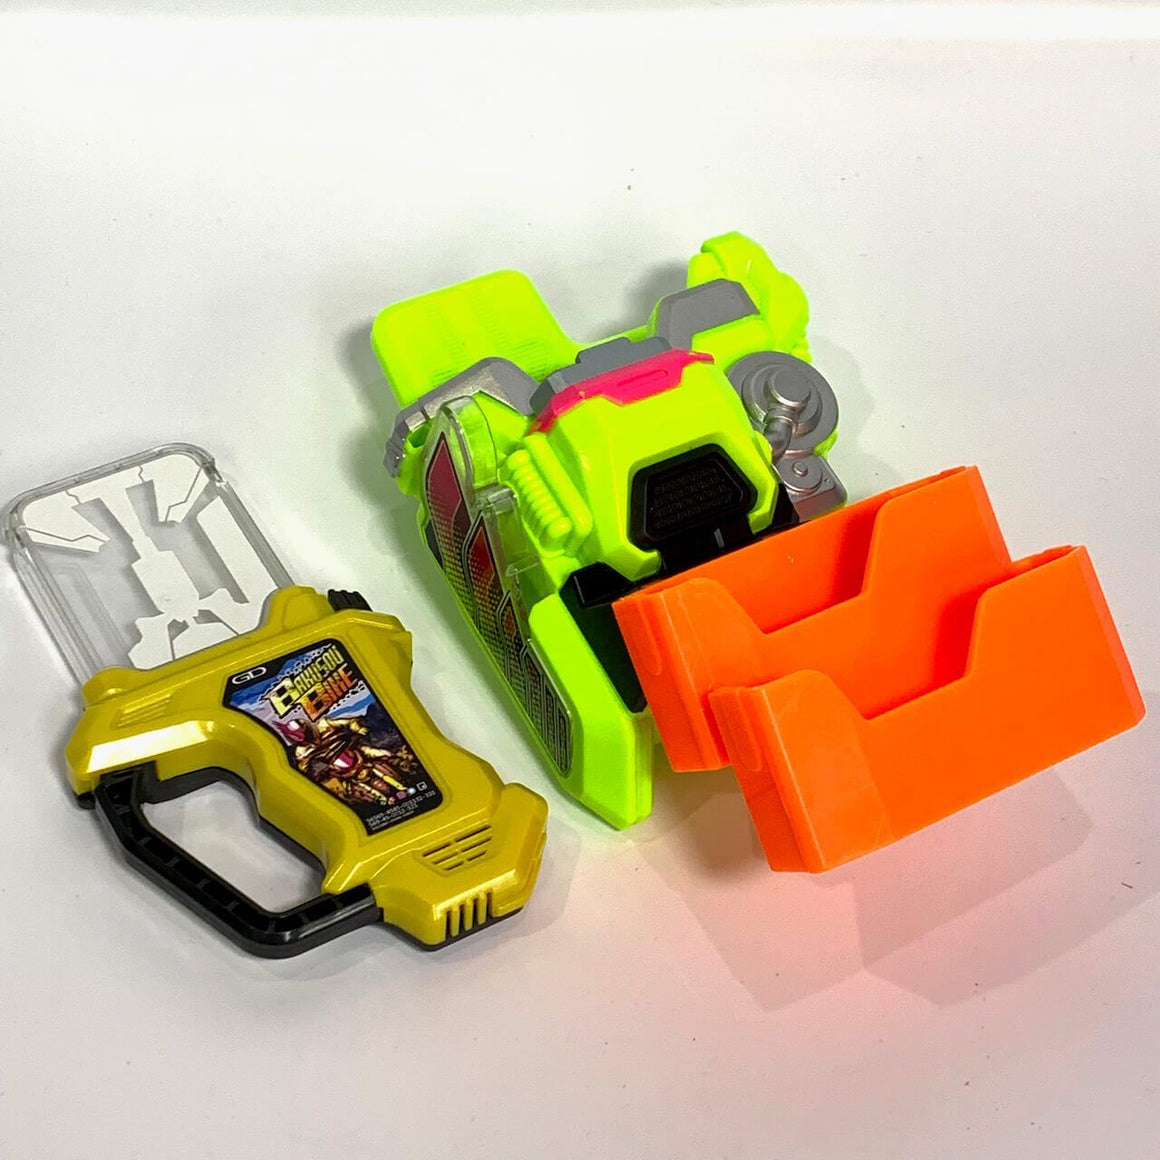 CSTOYS INTERNATIONAL:[LOOSE] Kamen Rider Ex-Aid: DX Kimewaza Slot Holder & Bakusou Bike Gashat Set